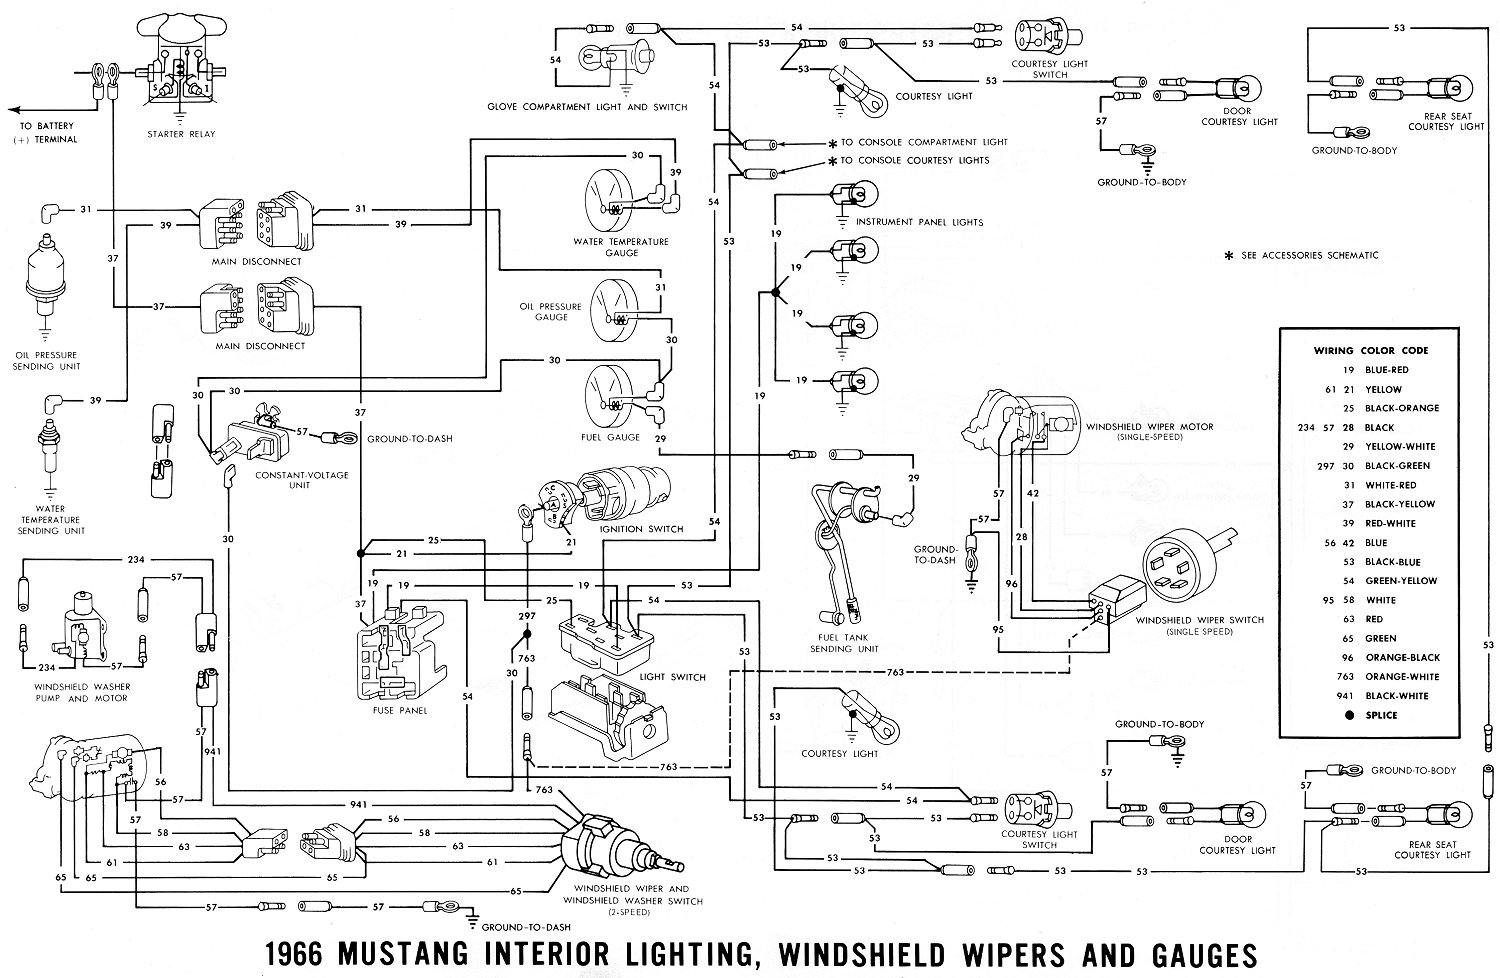 66inter1 1966 mustang wiring diagrams average joe restoration mustang wiring harness diagram at bayanpartner.co